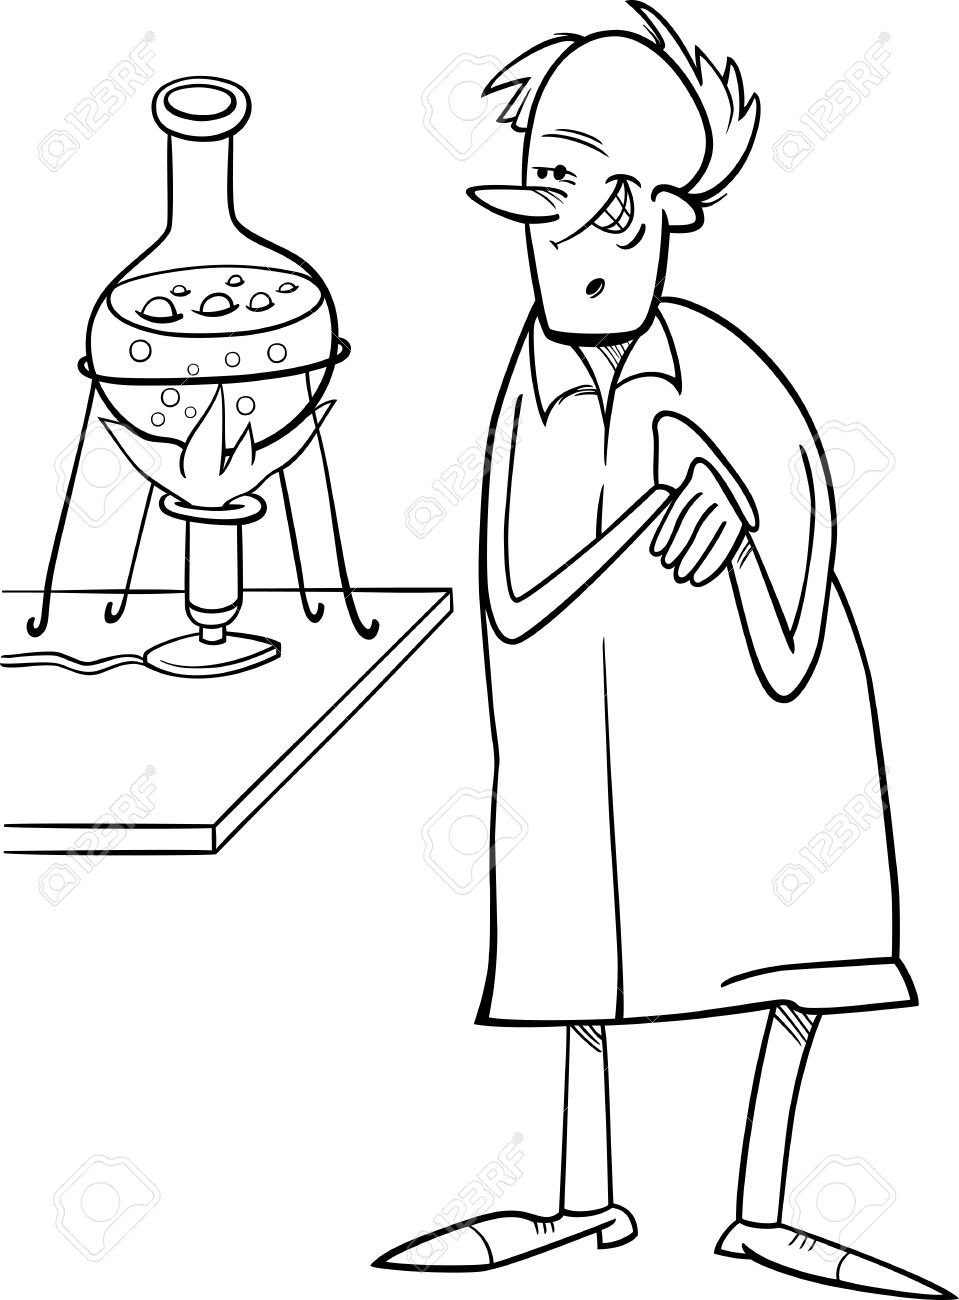 black and white cartoon illustration of funny scientist in